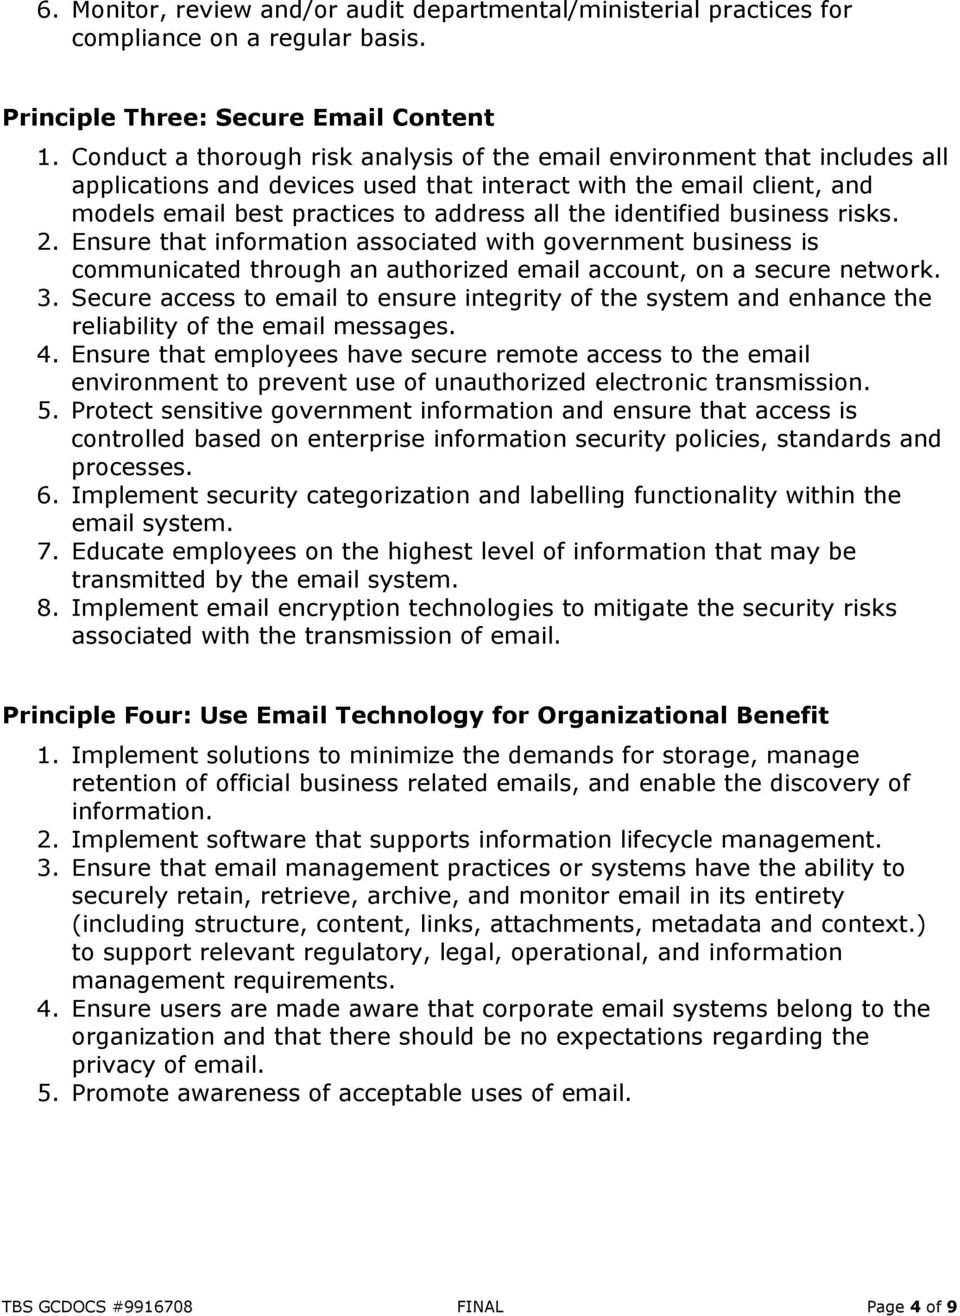 identified business risks. 2. Ensure that information associated with government business is communicated through an authorized email account, on a secure network. 3.